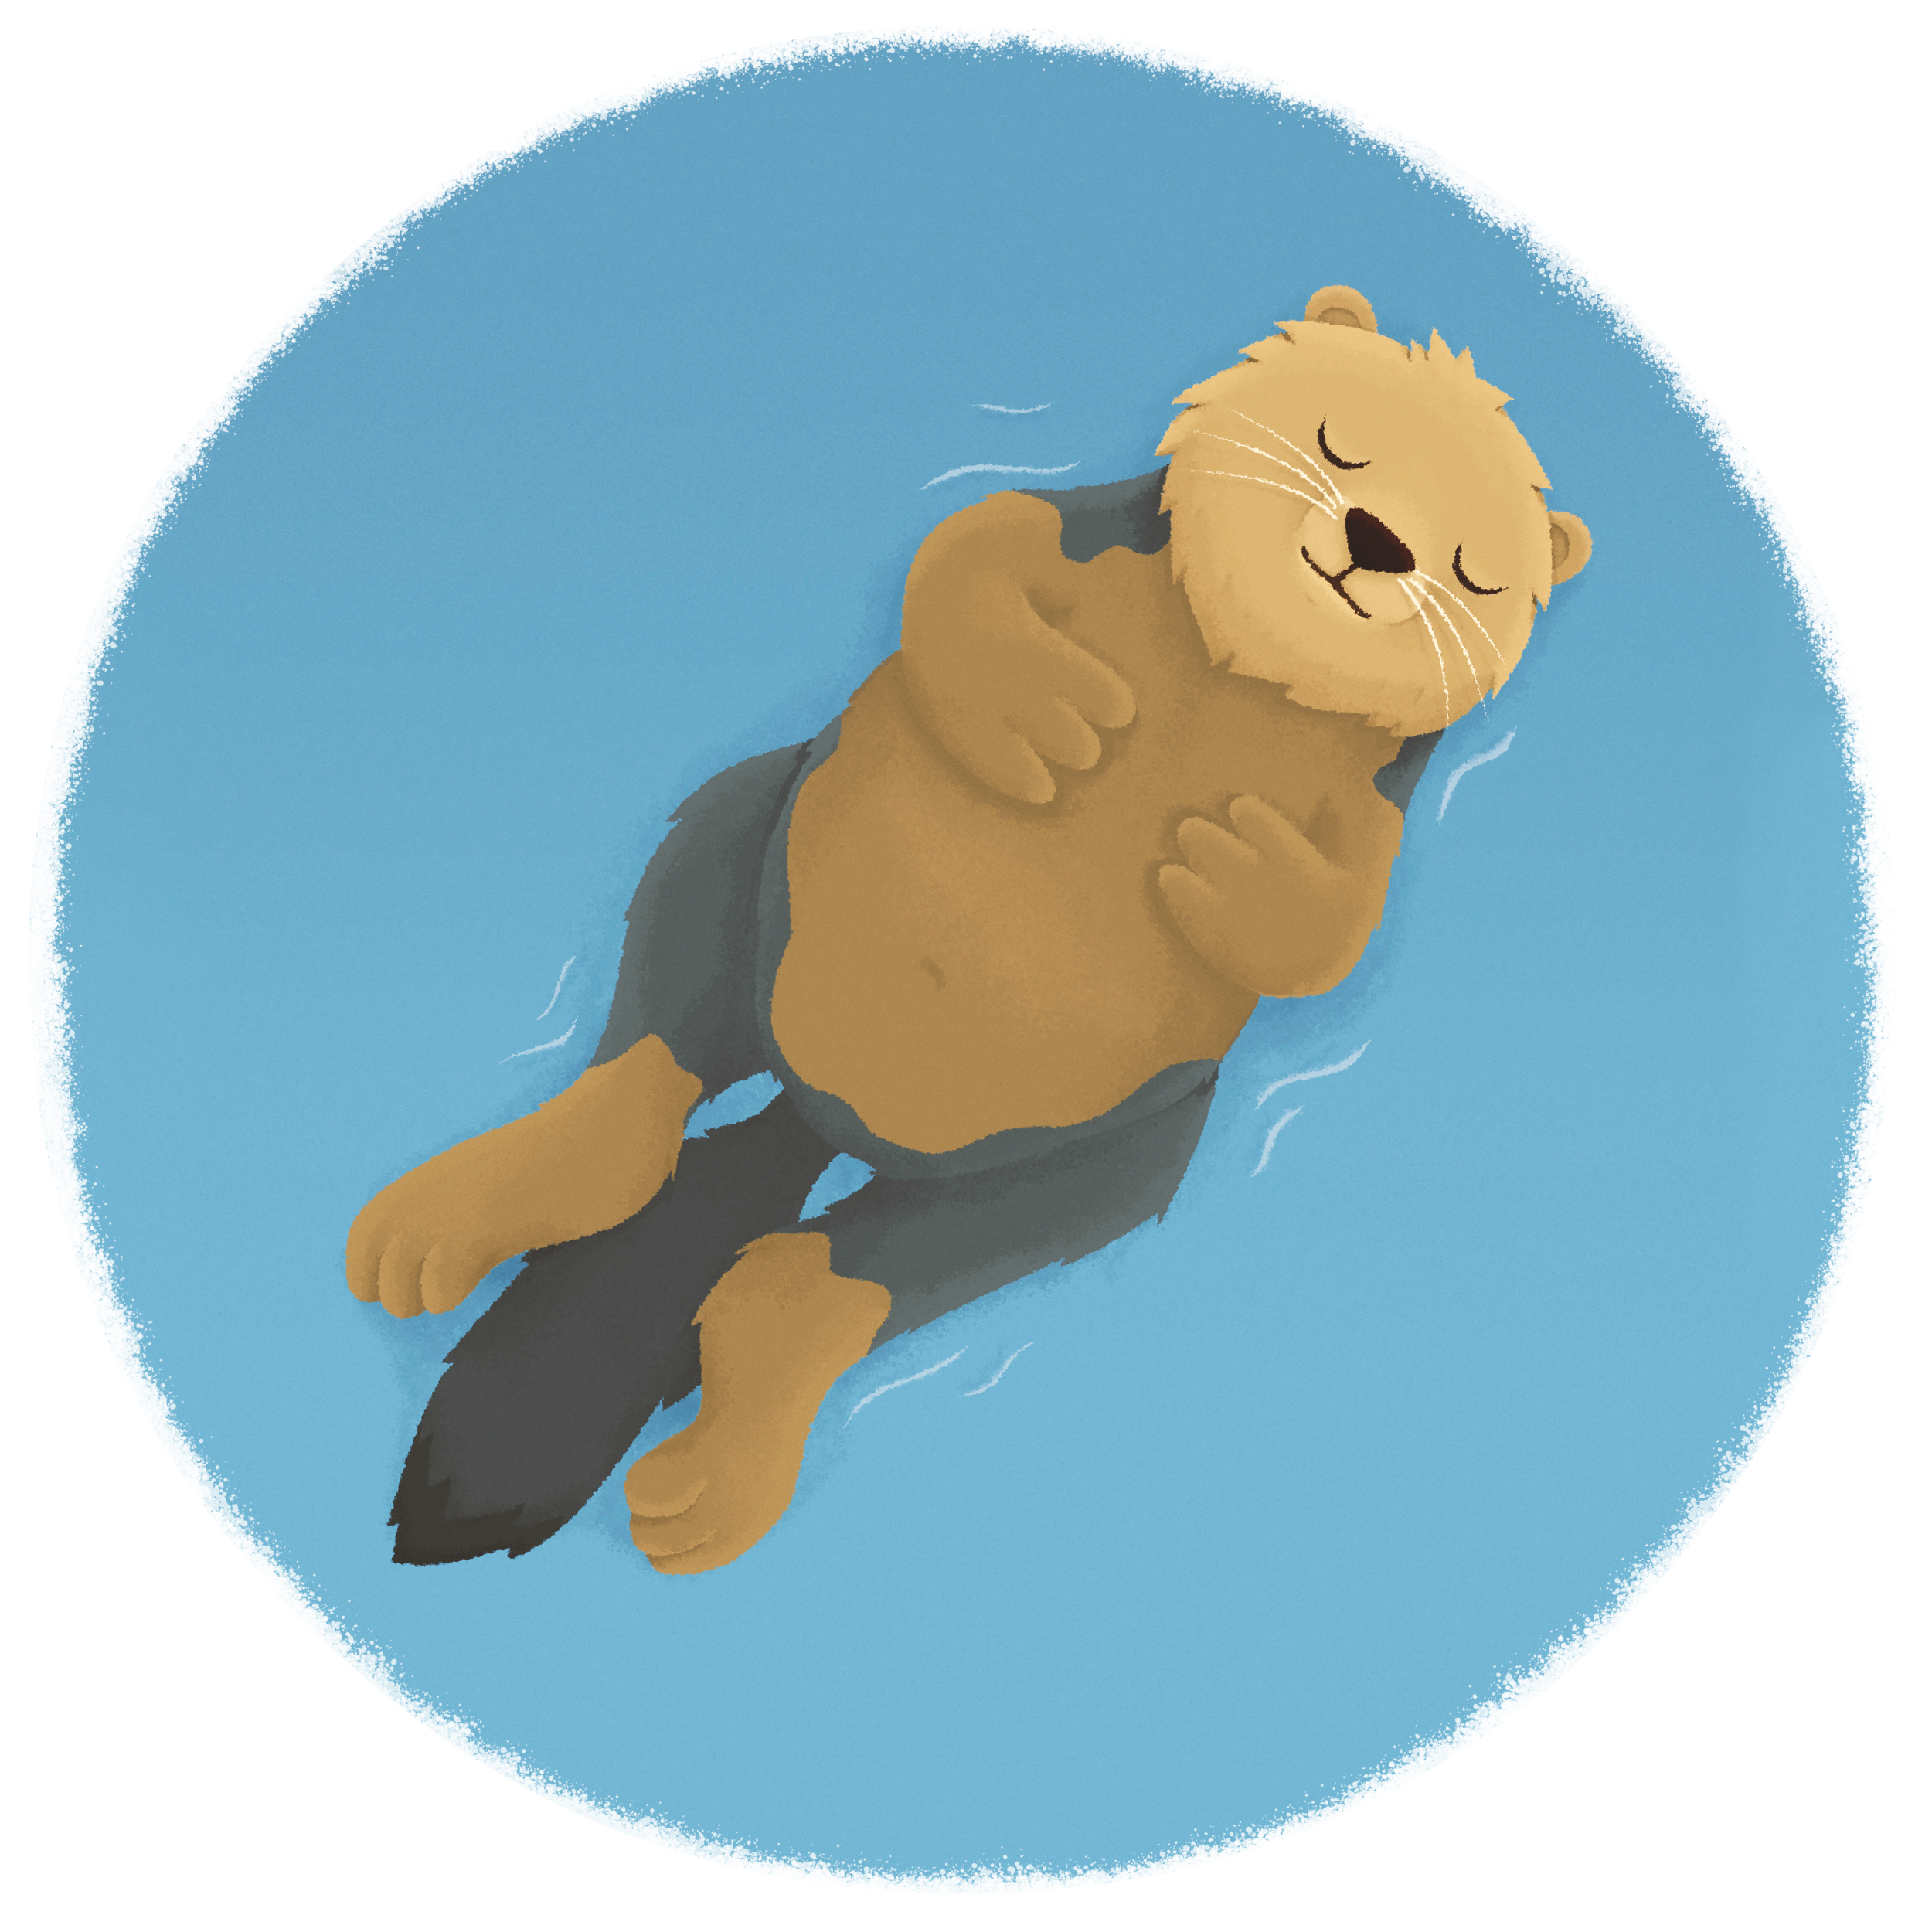 otter_illustration